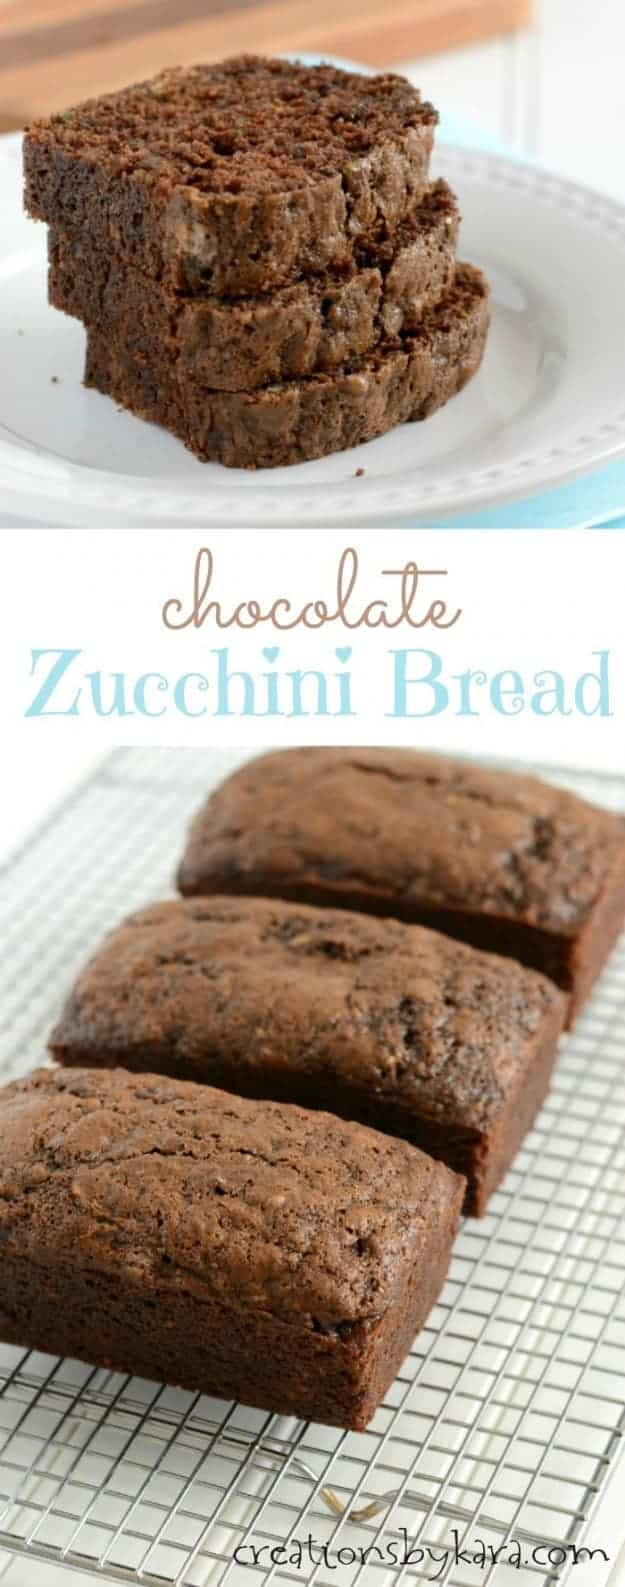 Moist and delicious Chocolate Zucchini Bread